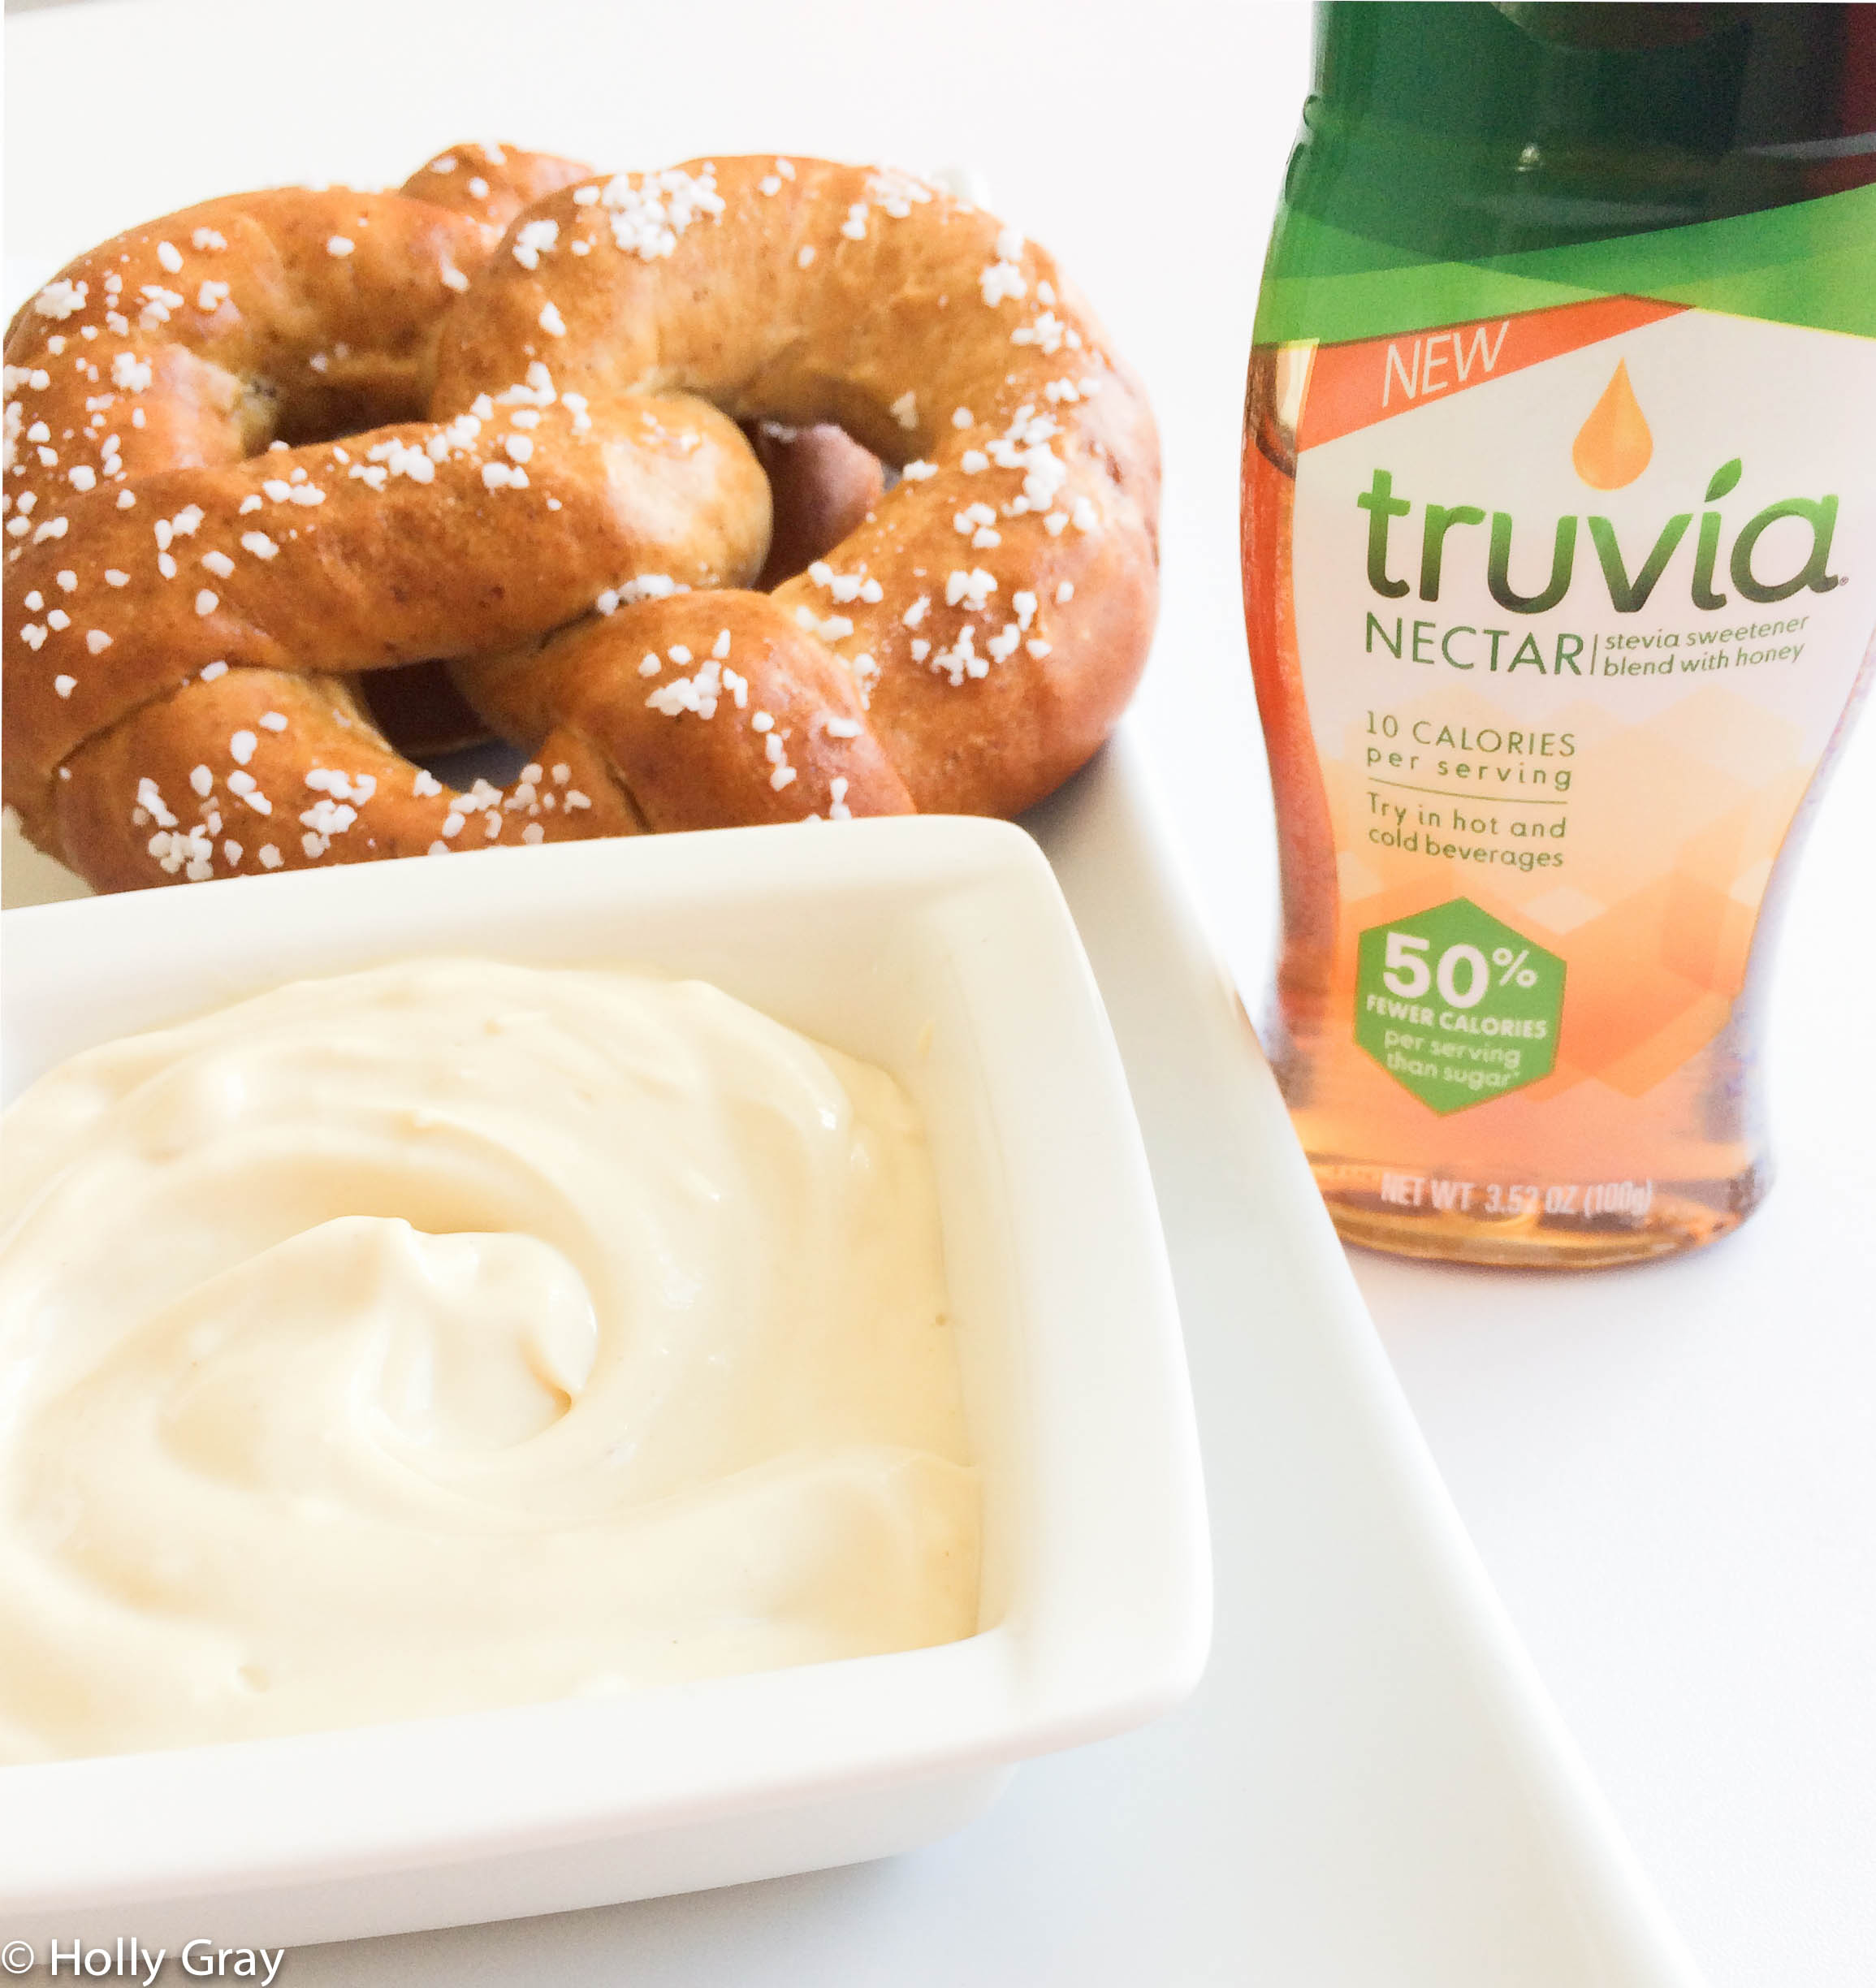 Honey Mustard Pretzel Dip with Truvia Nectar